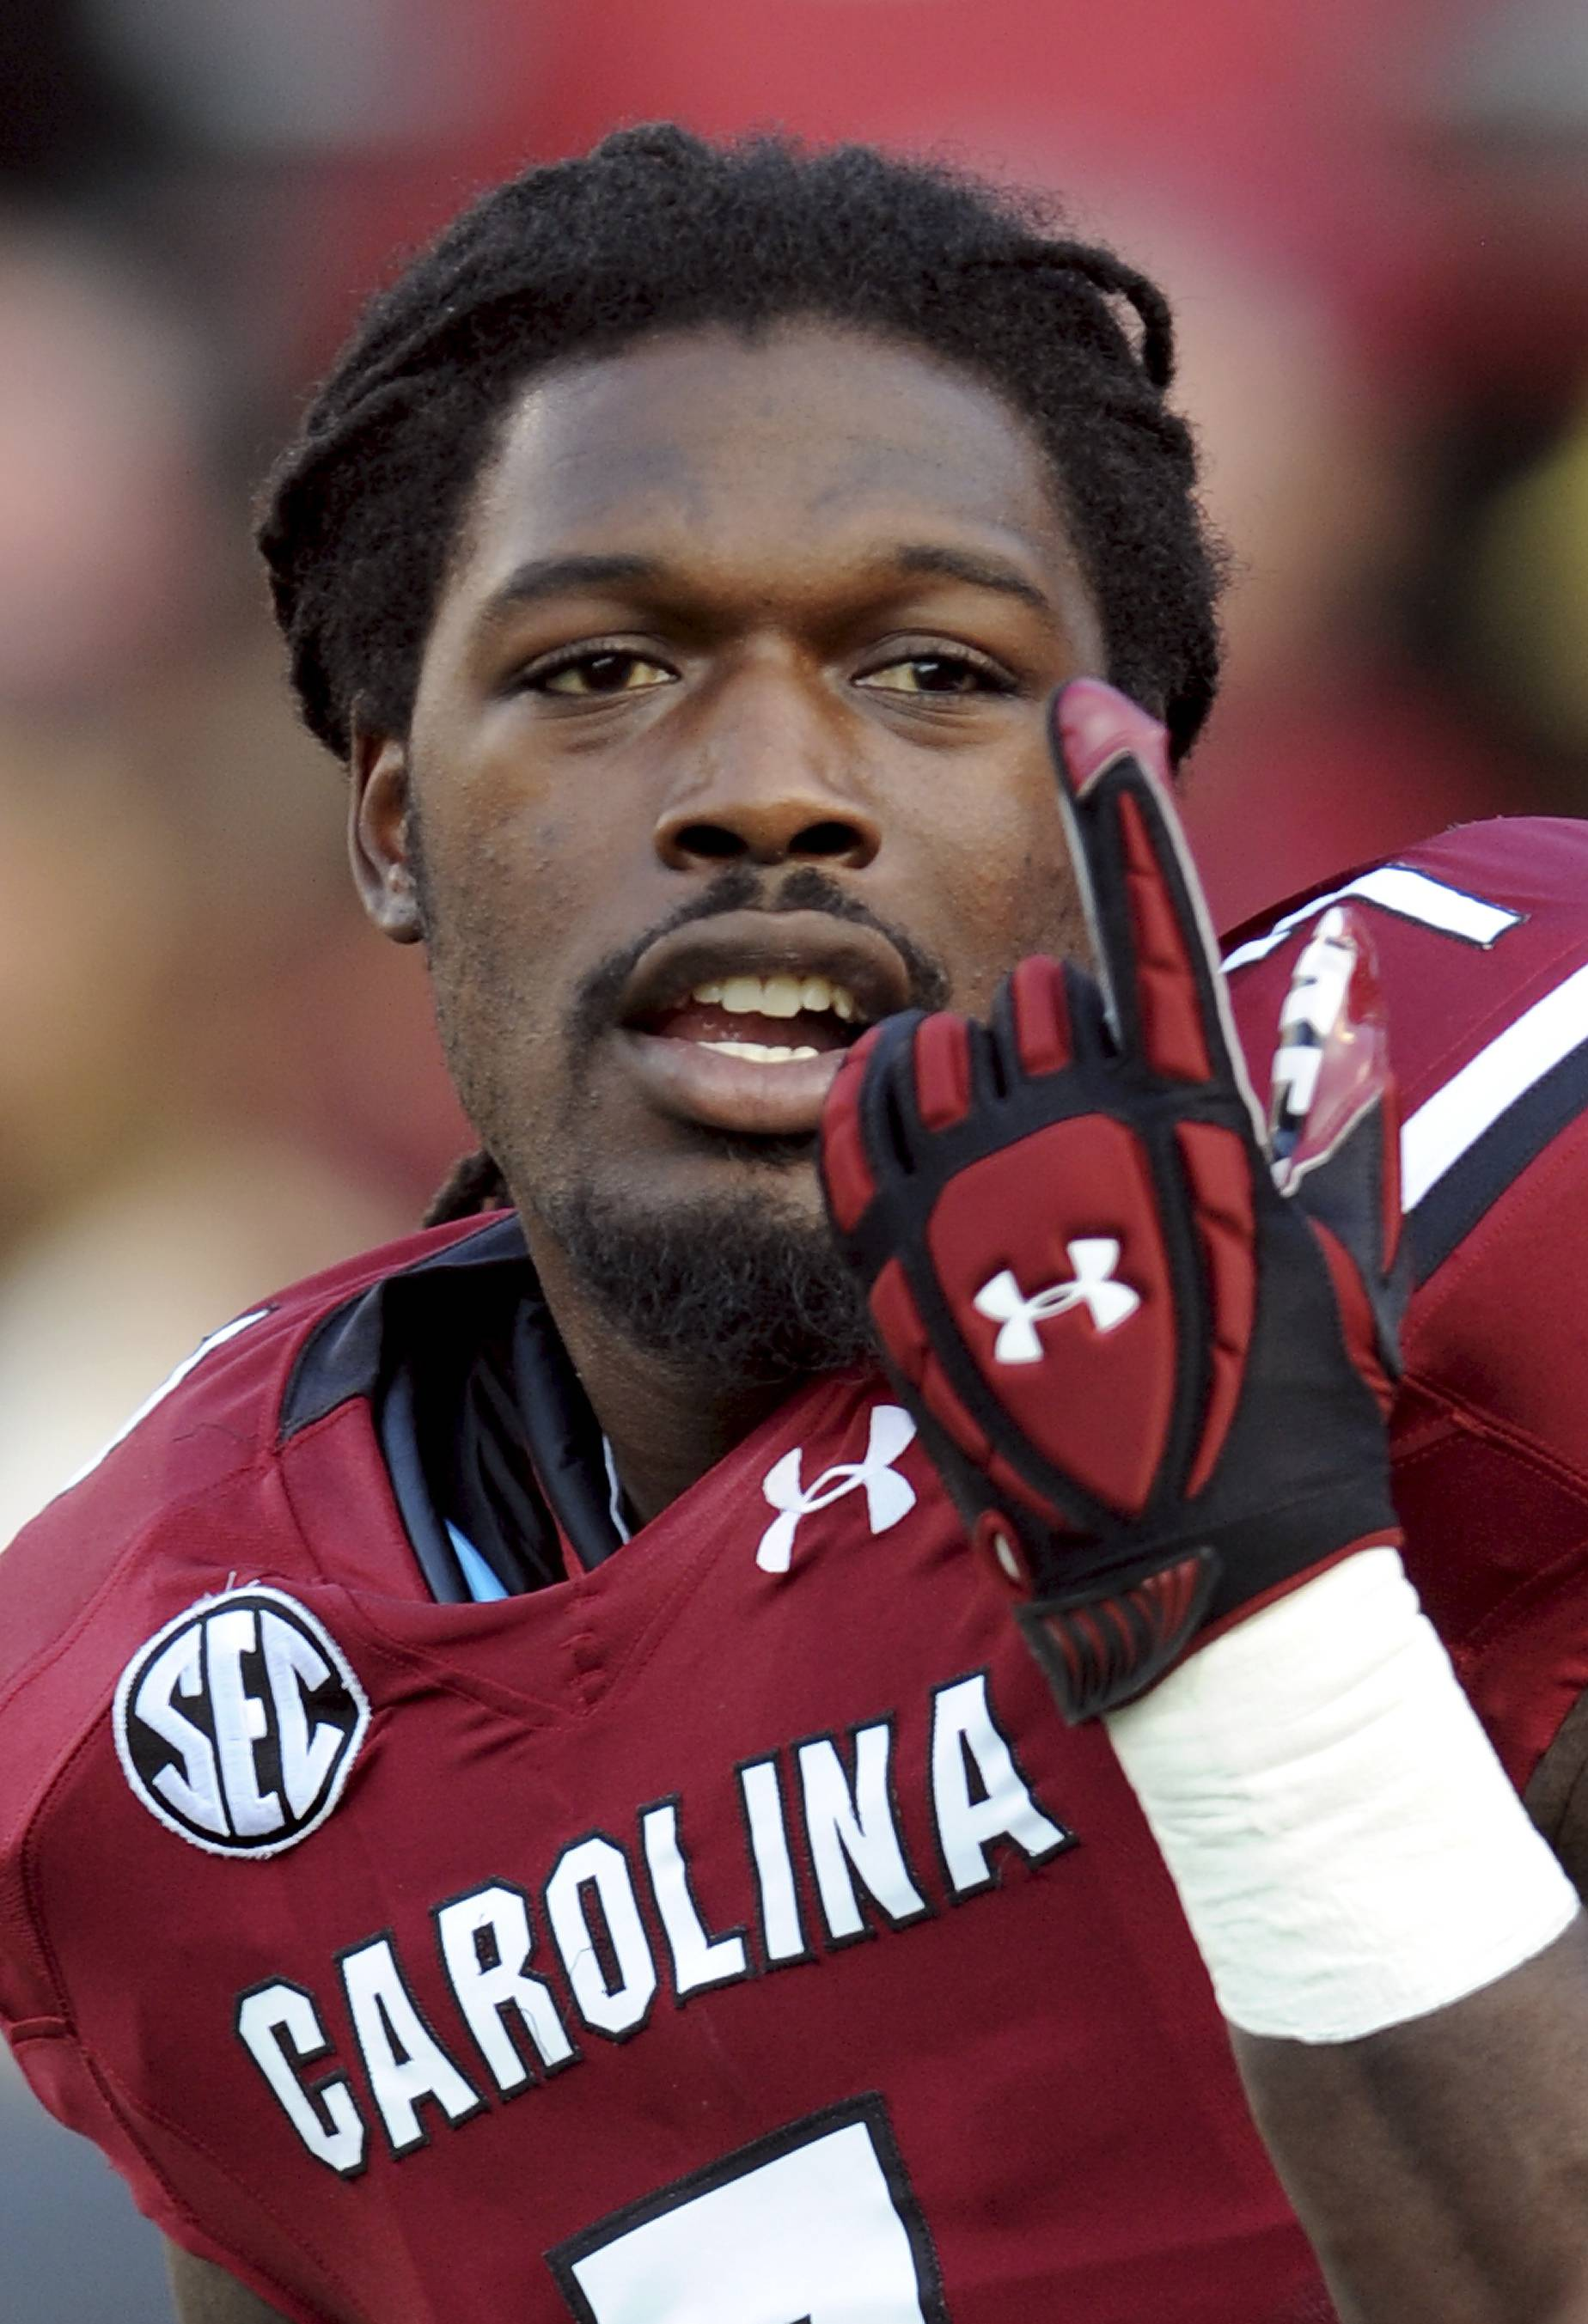 South Carolina defensive end Jadeveon Clowney finished last season with 11½ tackles for loss and three sacks after getting 23½ and 13 in 2012. He is a top prospect in the upcoming NFL draft.